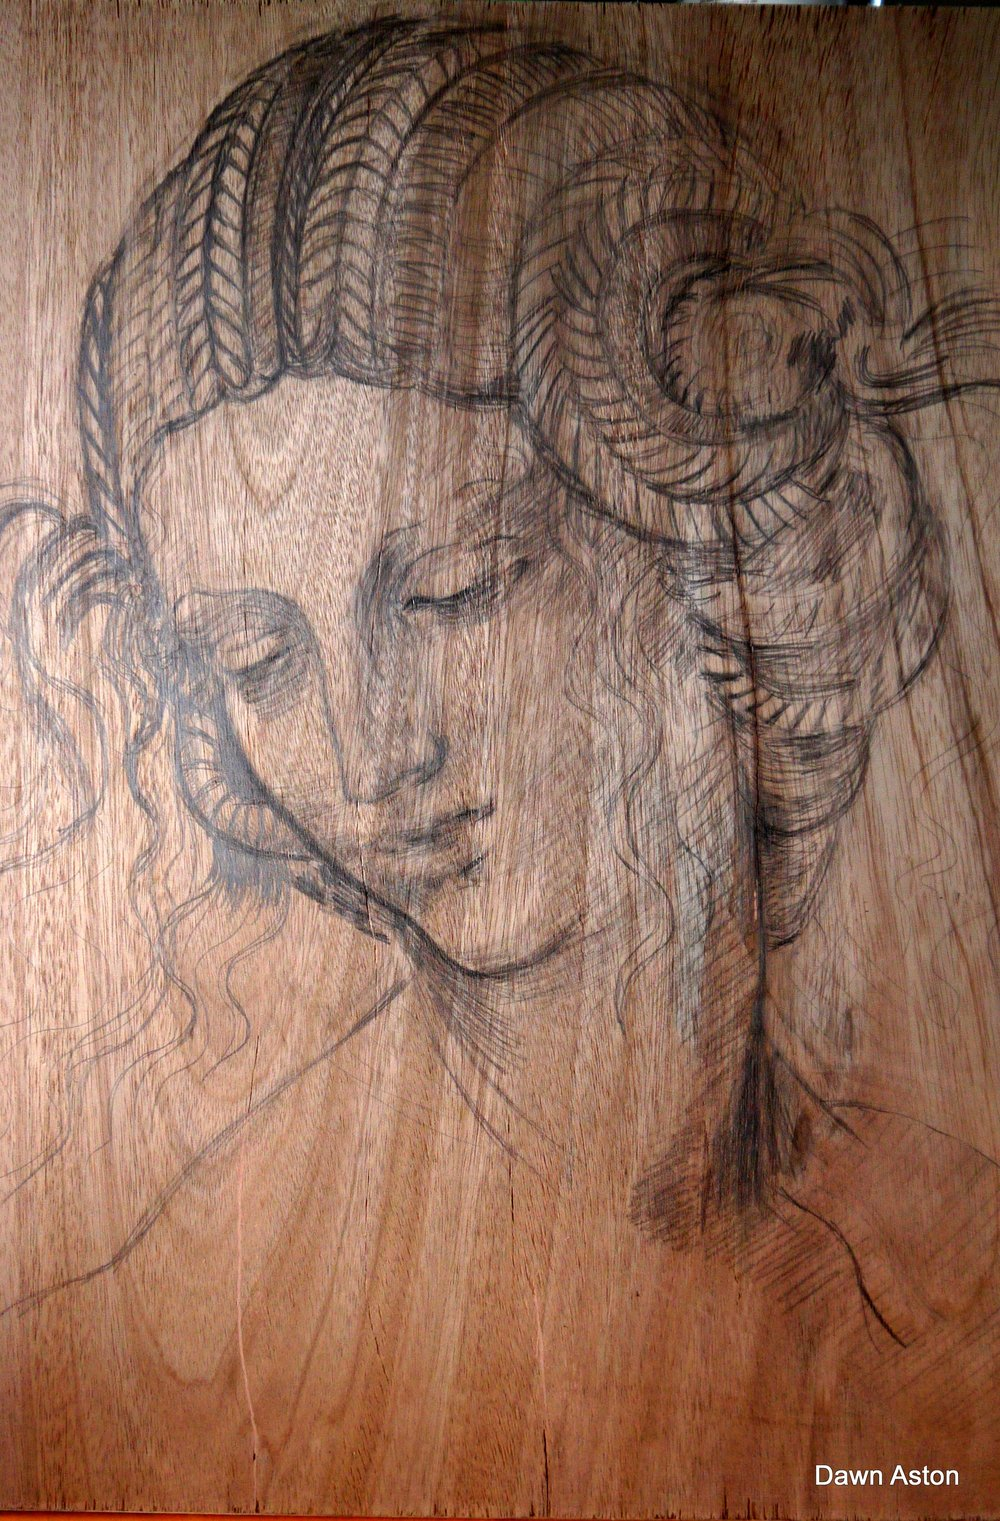 'After Leonardo' drawing on timber 2014 Dawn Aston.JPG